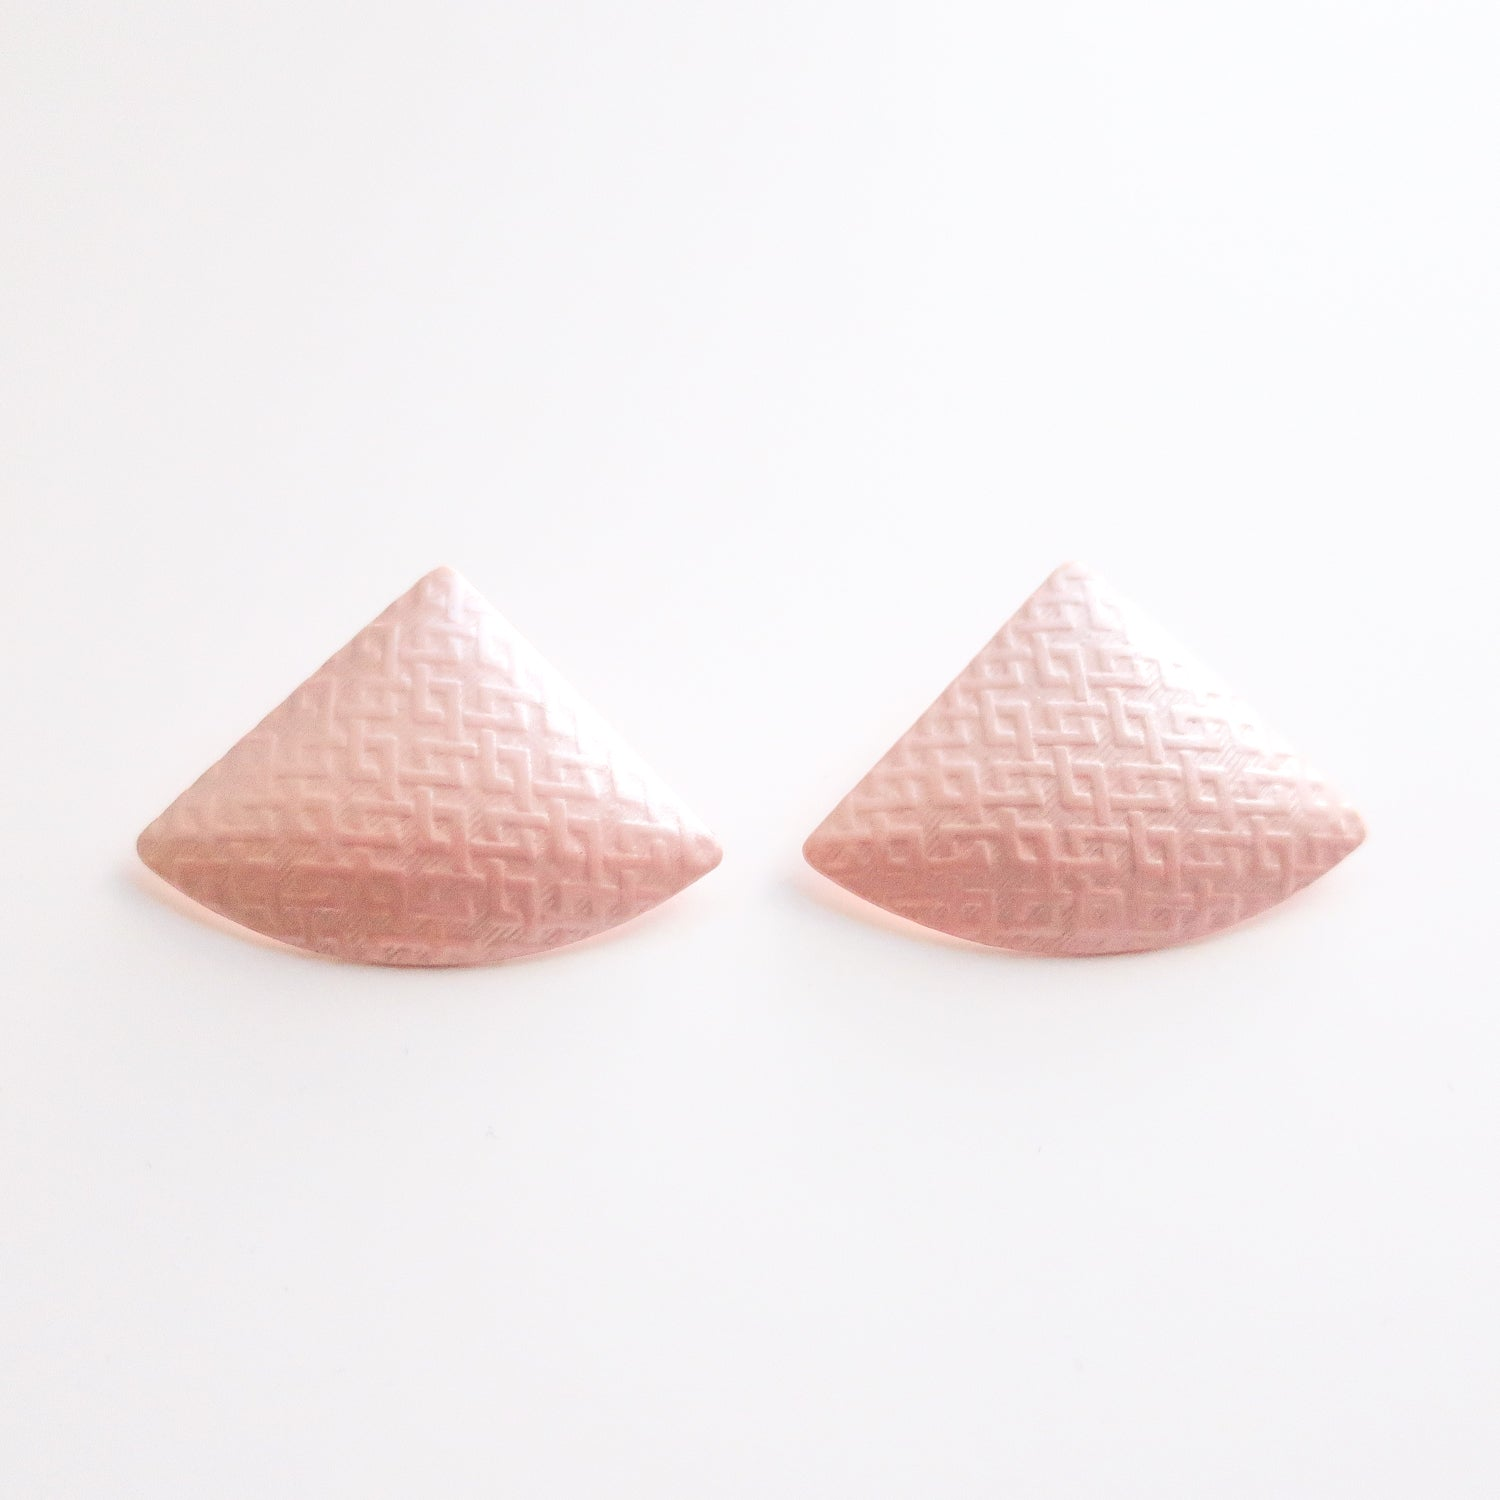 "Second Room Vintage Clothing. Vintage pale pink triangle/fan shaped enamel earrings, with subtle embossed geometric design. Earrings are 1.5"" wide and 1.25"" tall. Original earring backs have been replaced with new, clear silicone backs. Free North American shipping on all orders."